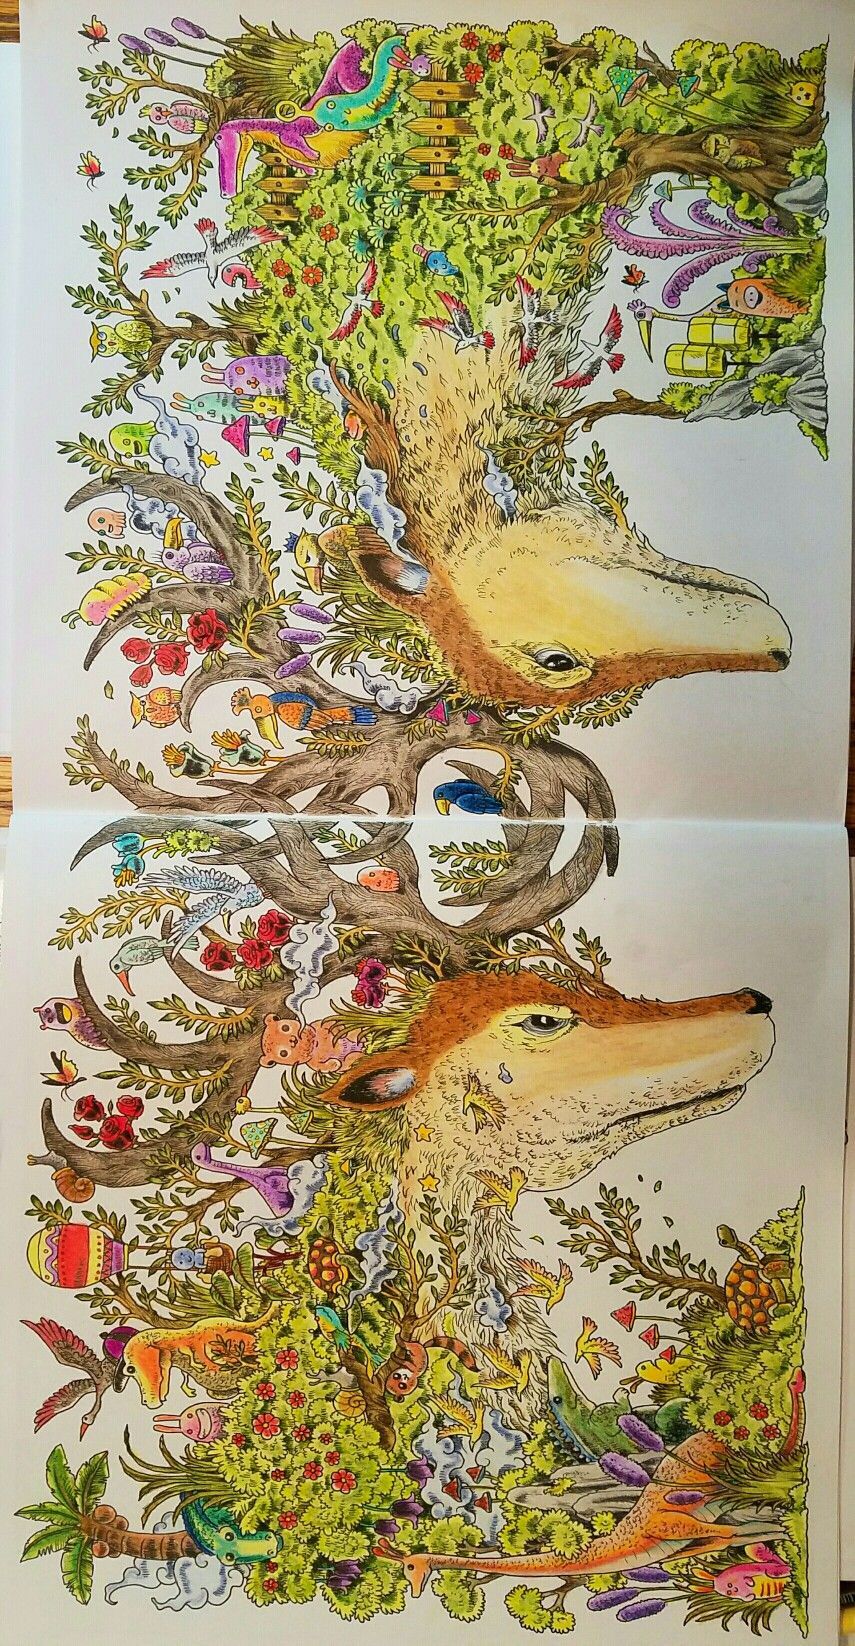 ANIMORPHIA Coloring Book By Kerby Rosanescolored Ellenetta